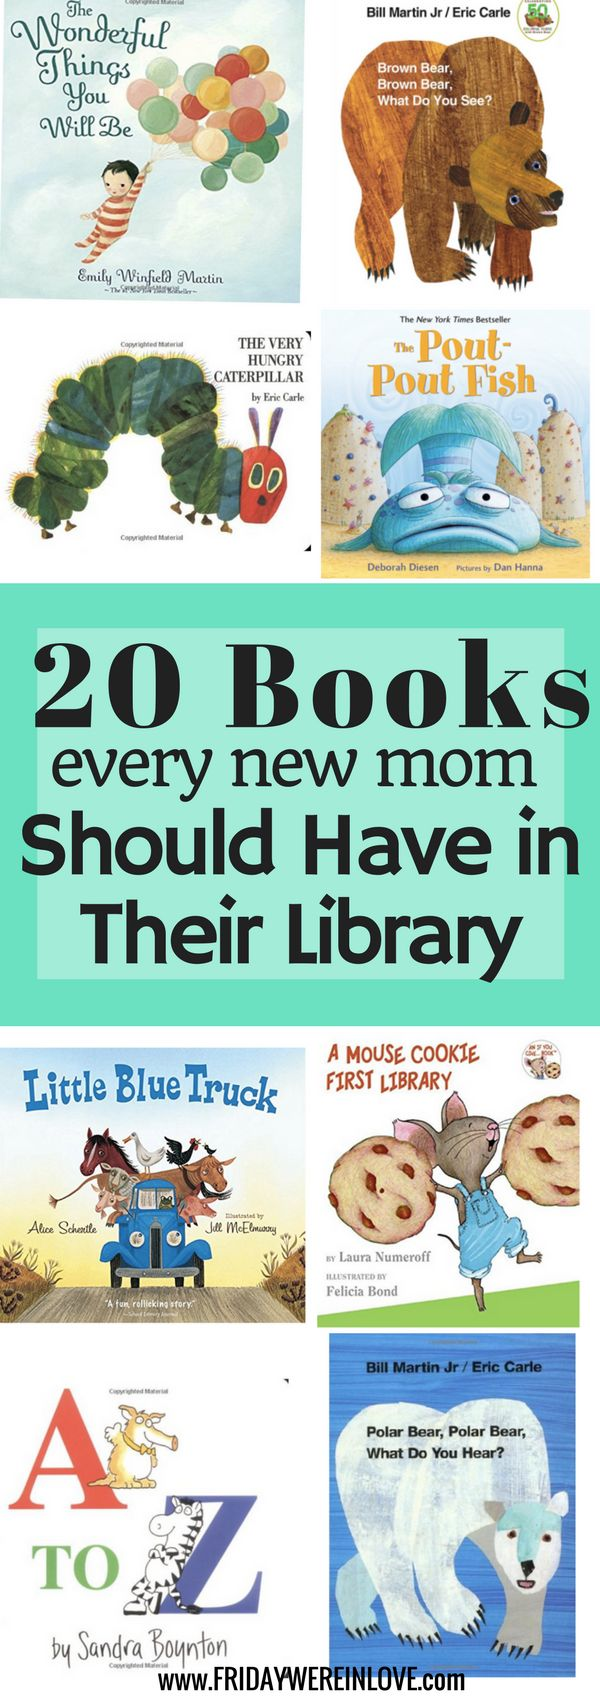 20 Books Every New Mom Should Have In Their Library. A Book List To help with Building a Children's Library that you and your child will enjoy for years!